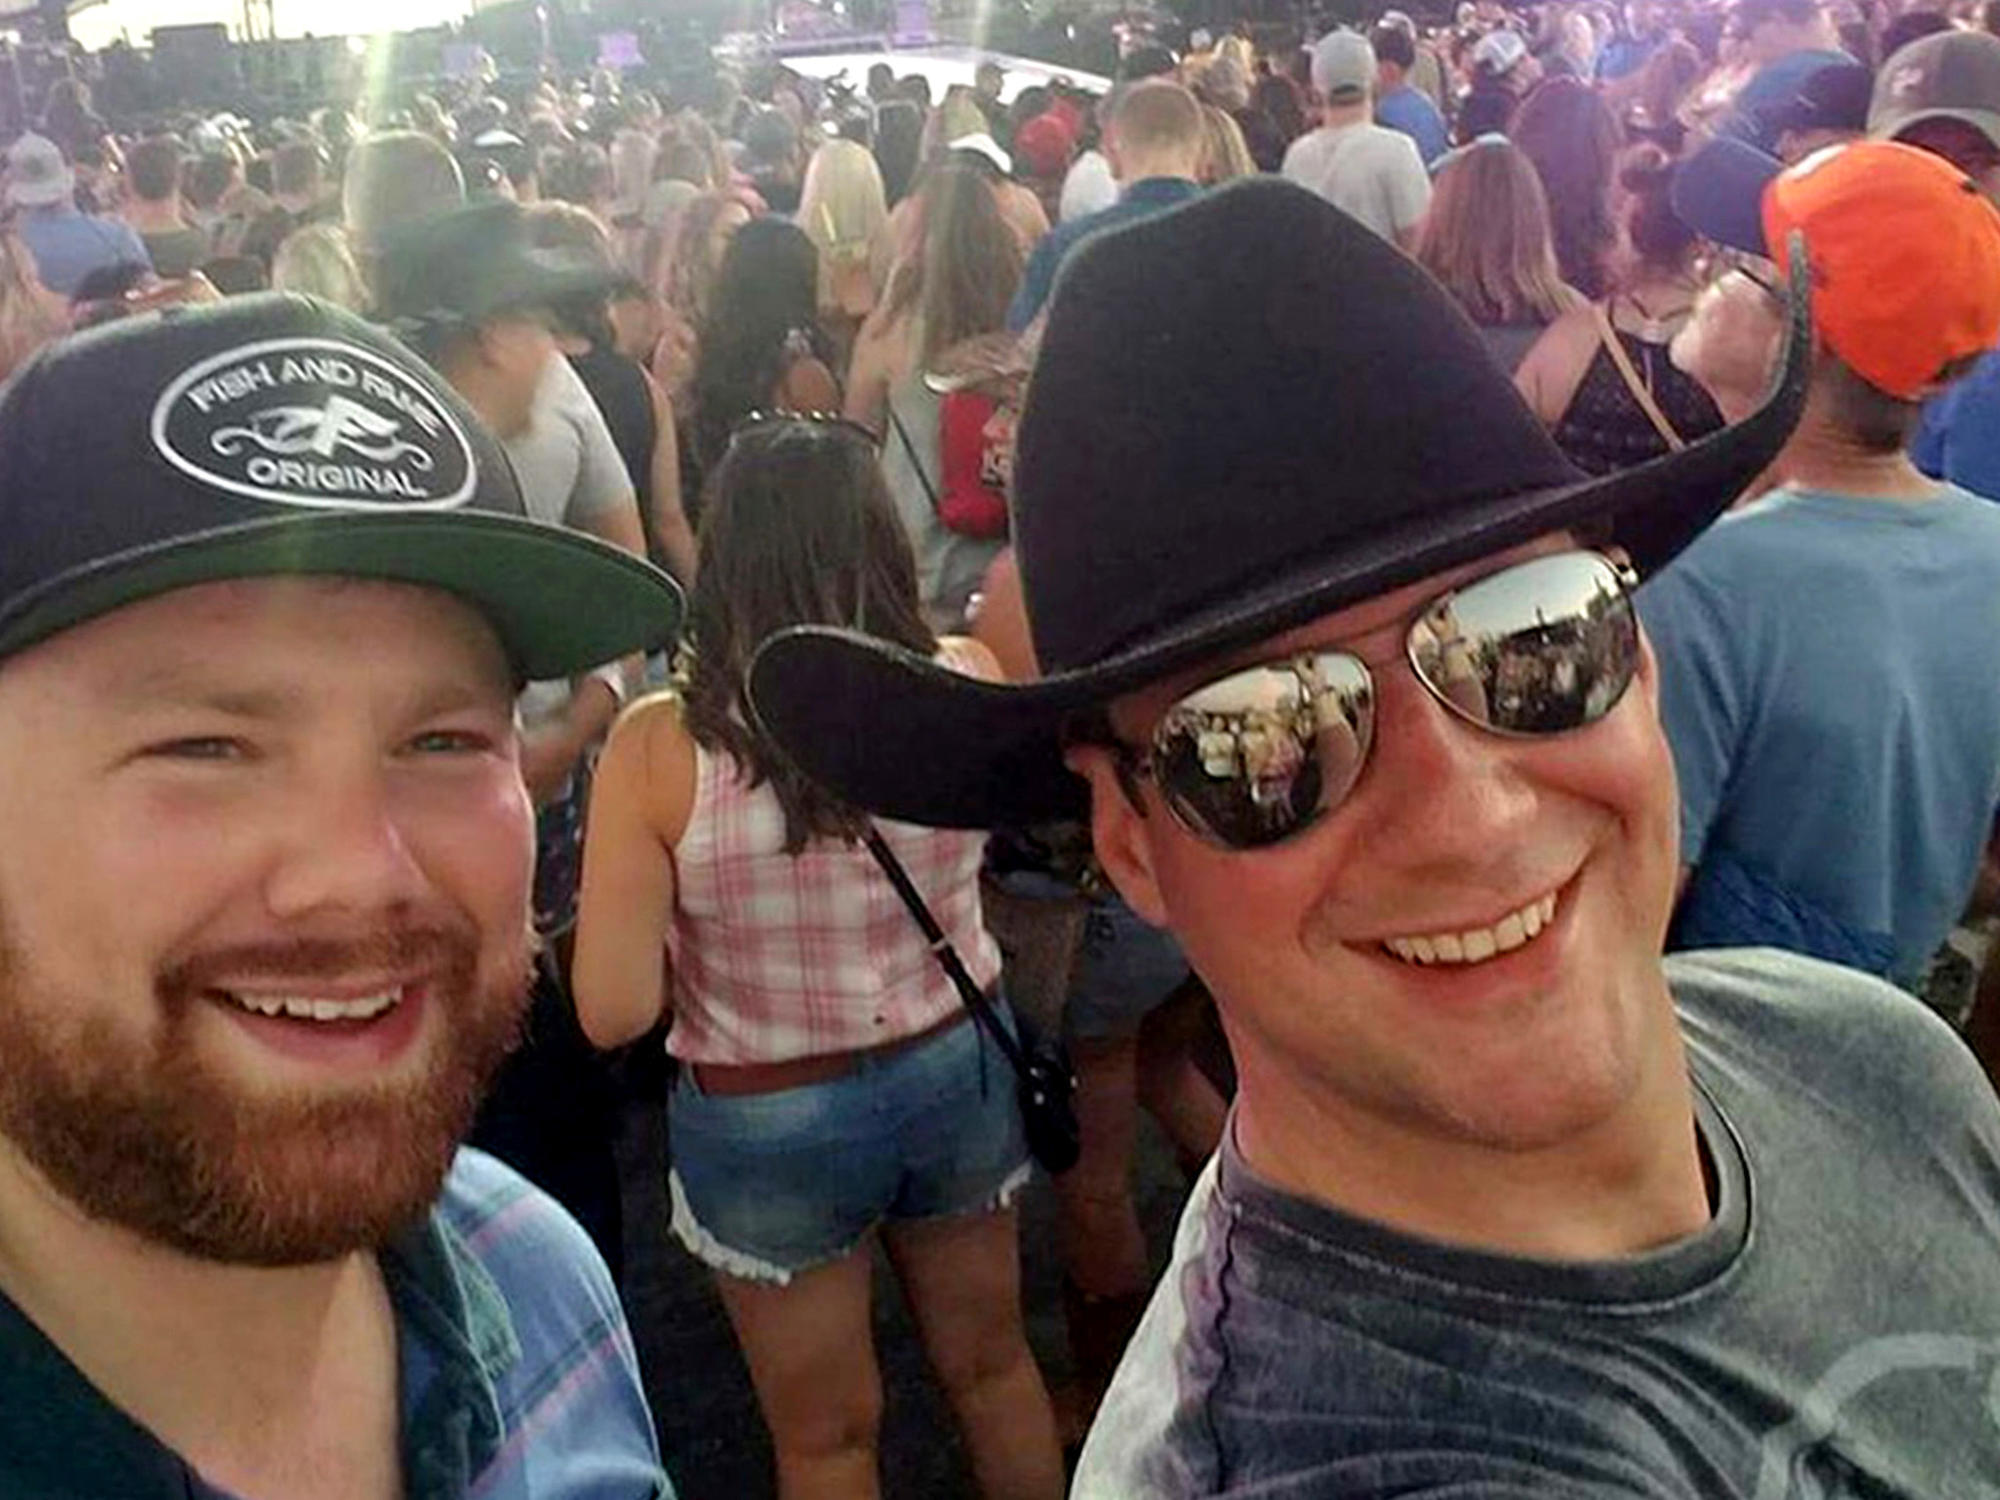 Brian MacKinnon (left) and Adrian Murfitt at the Route 91 Harvest music festival in Las Vegas.